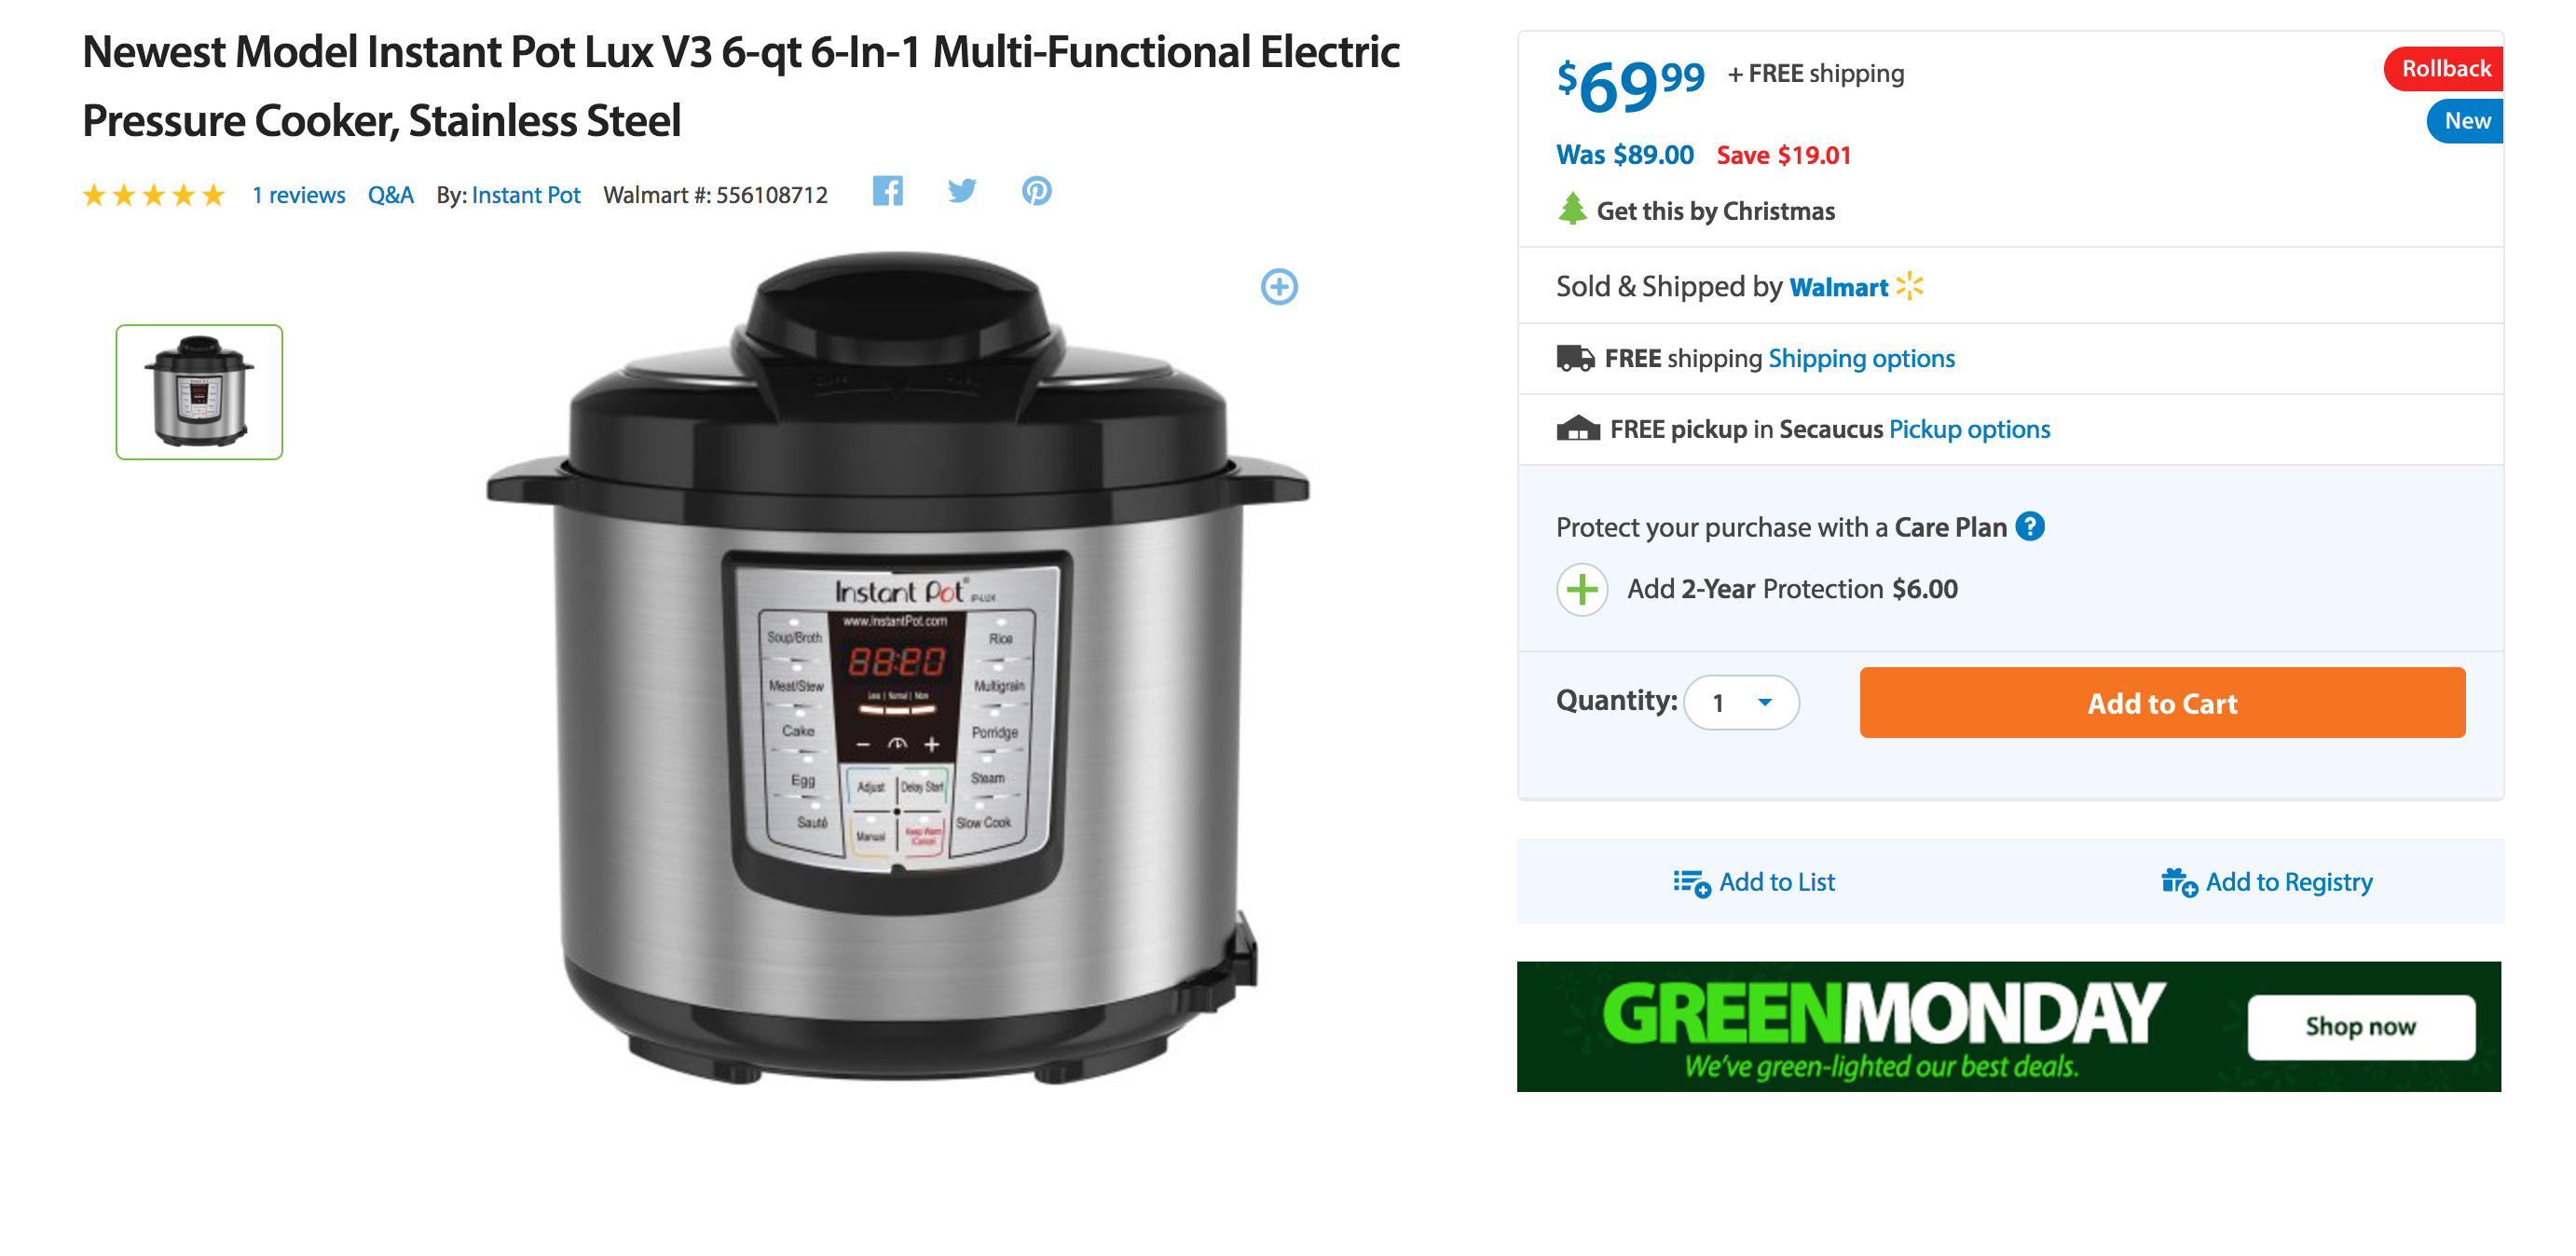 6-quart-instant-pot-ip-lux60-v3-programmable-electric-pressure-cooker-2